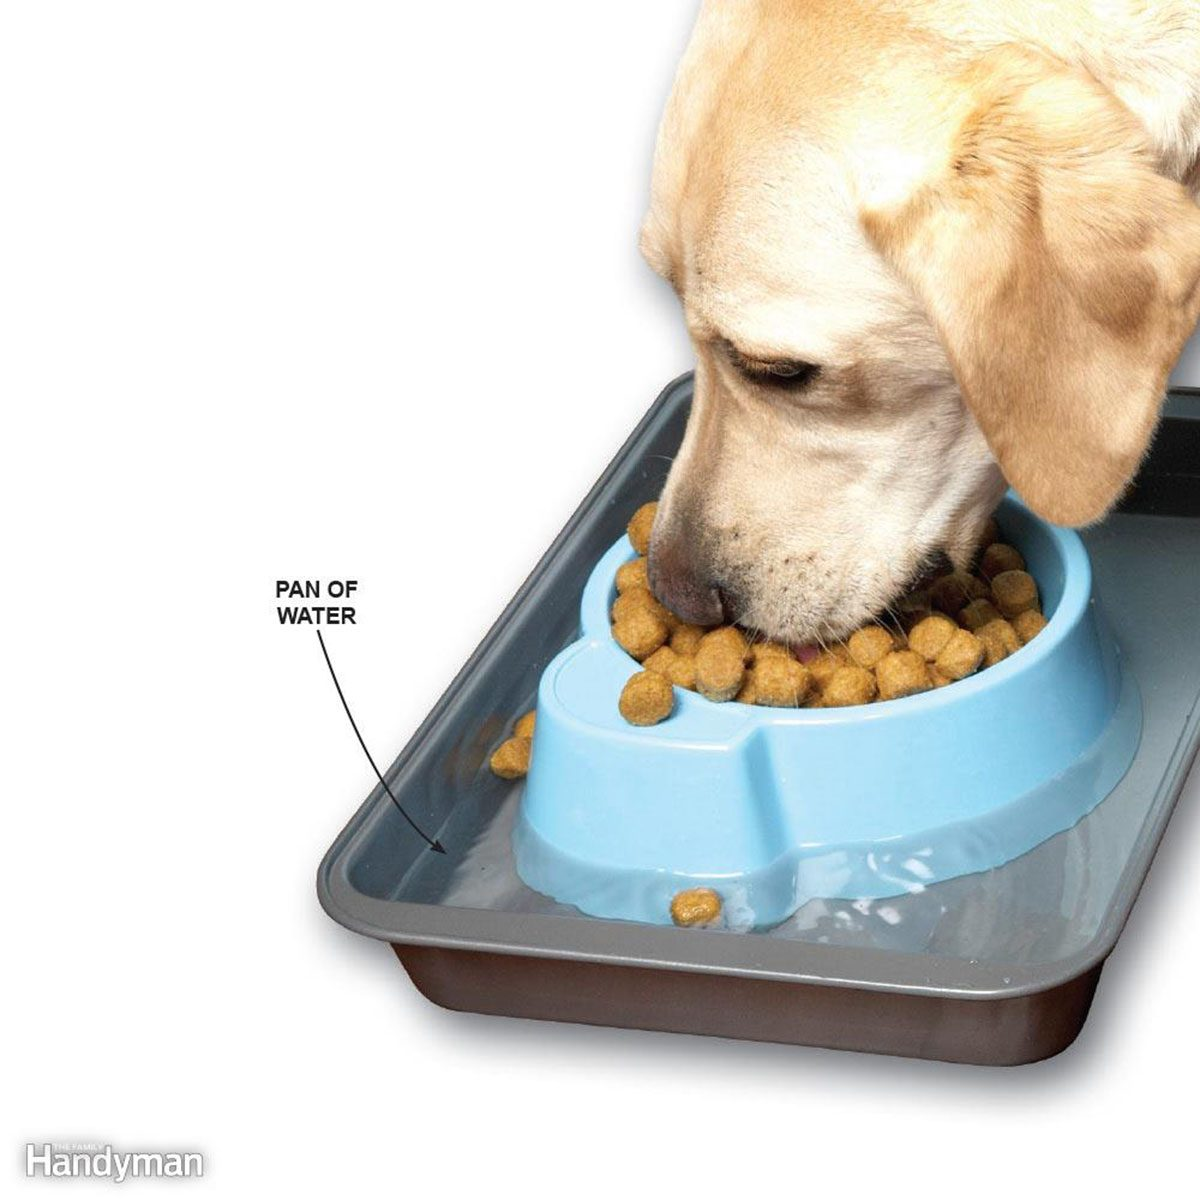 Dog eating food from a dish in a tray of water